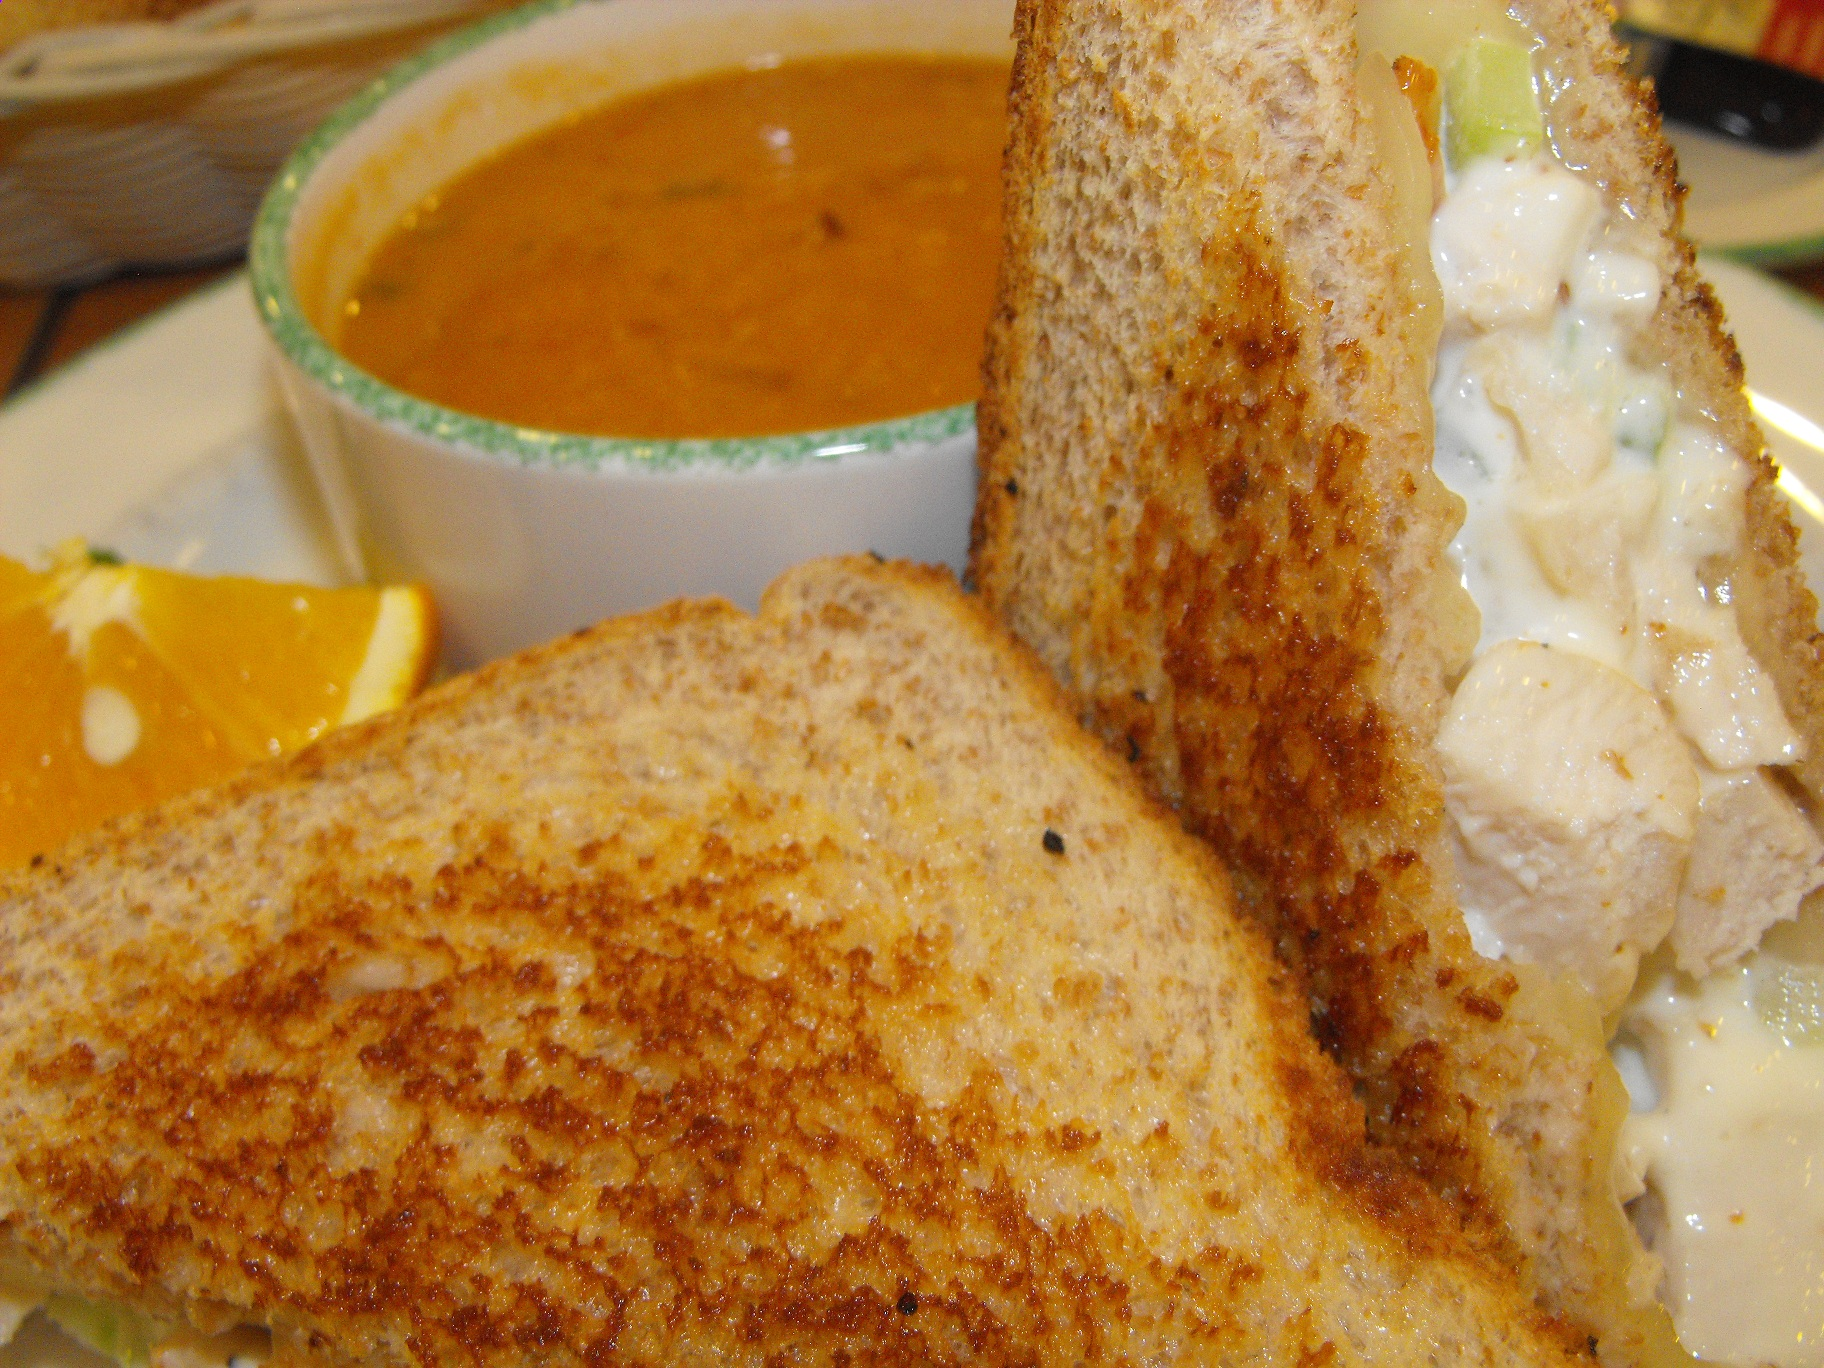 http://foodloader.net/cutie_2011-03-17_Chicken_Sandwich_with_Soup.jpg